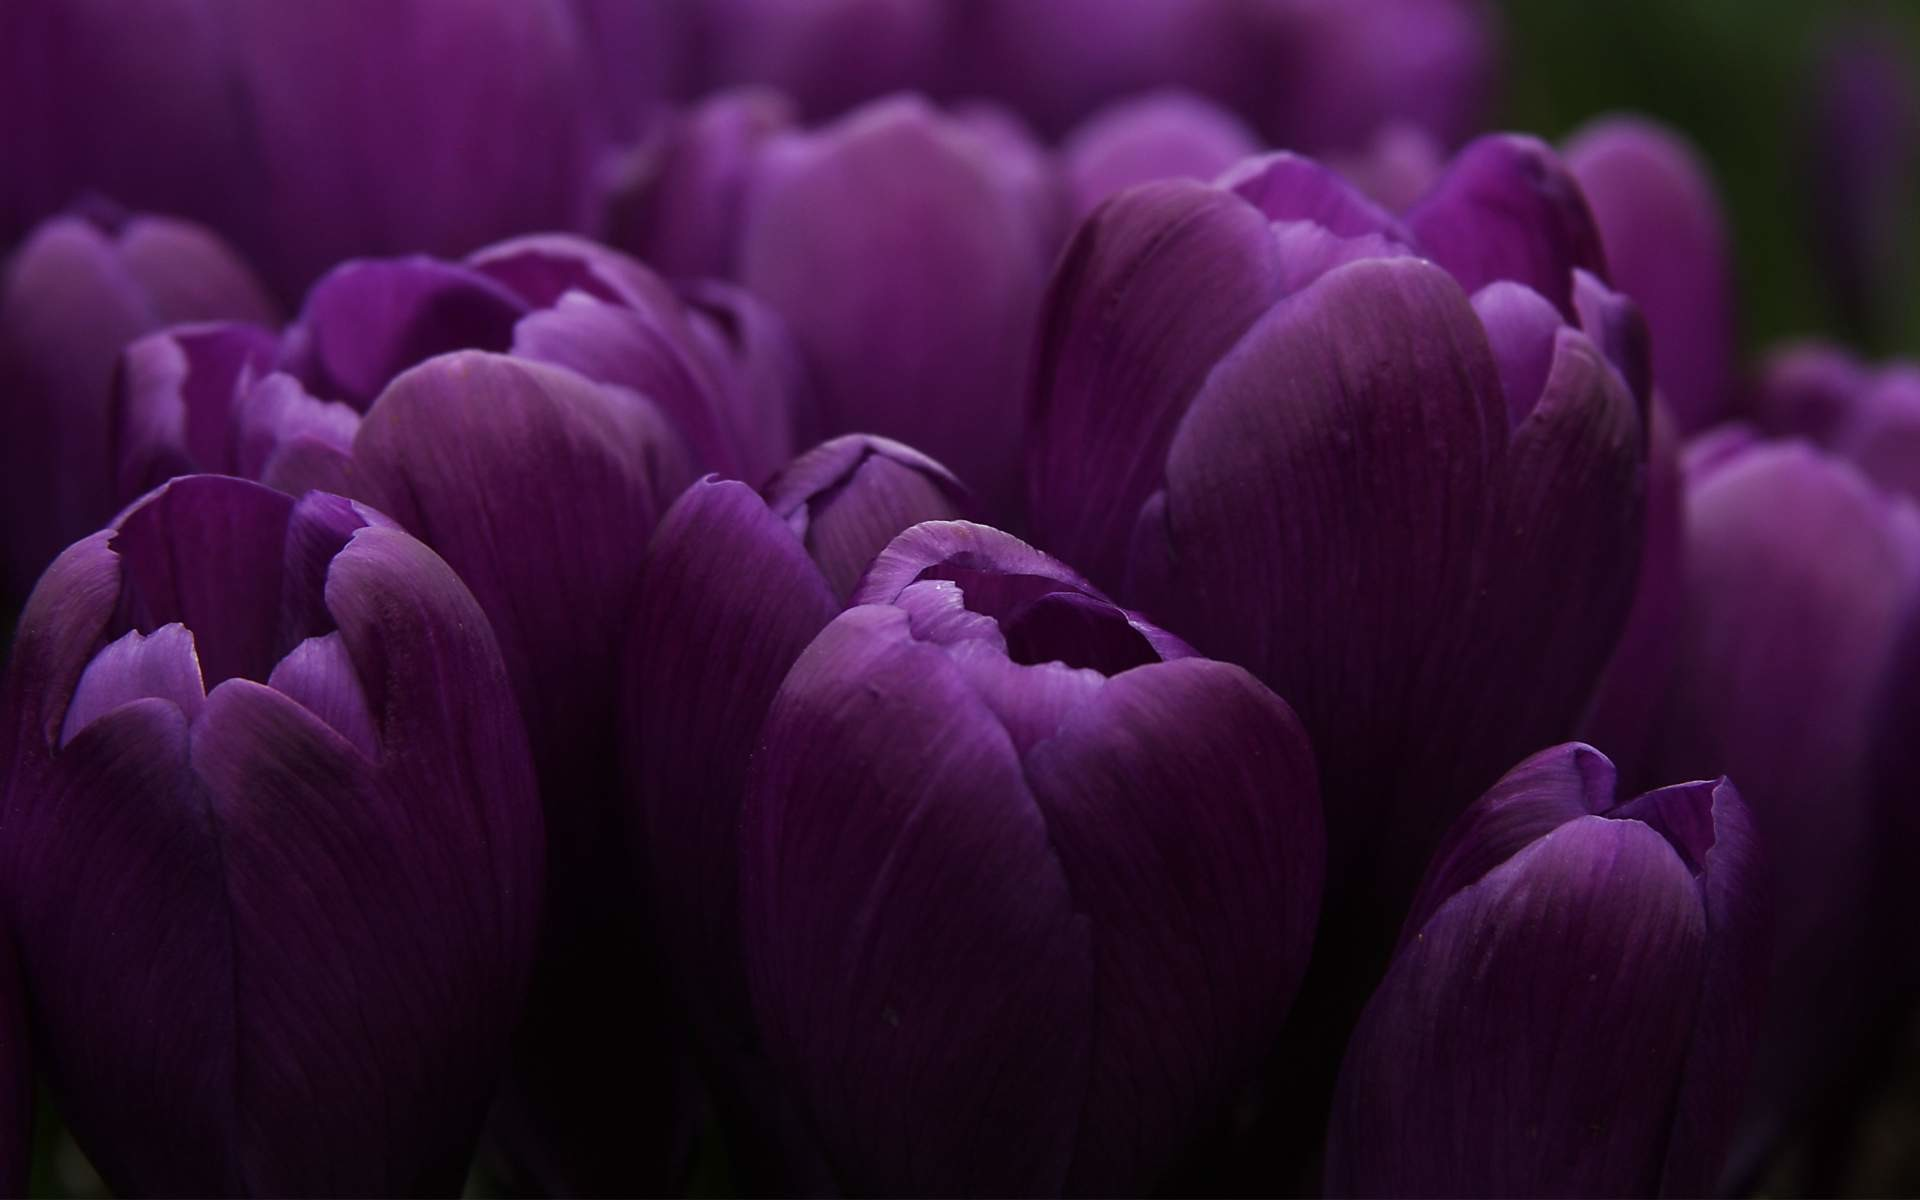 Wallpapers For > Purple Flower Black Background